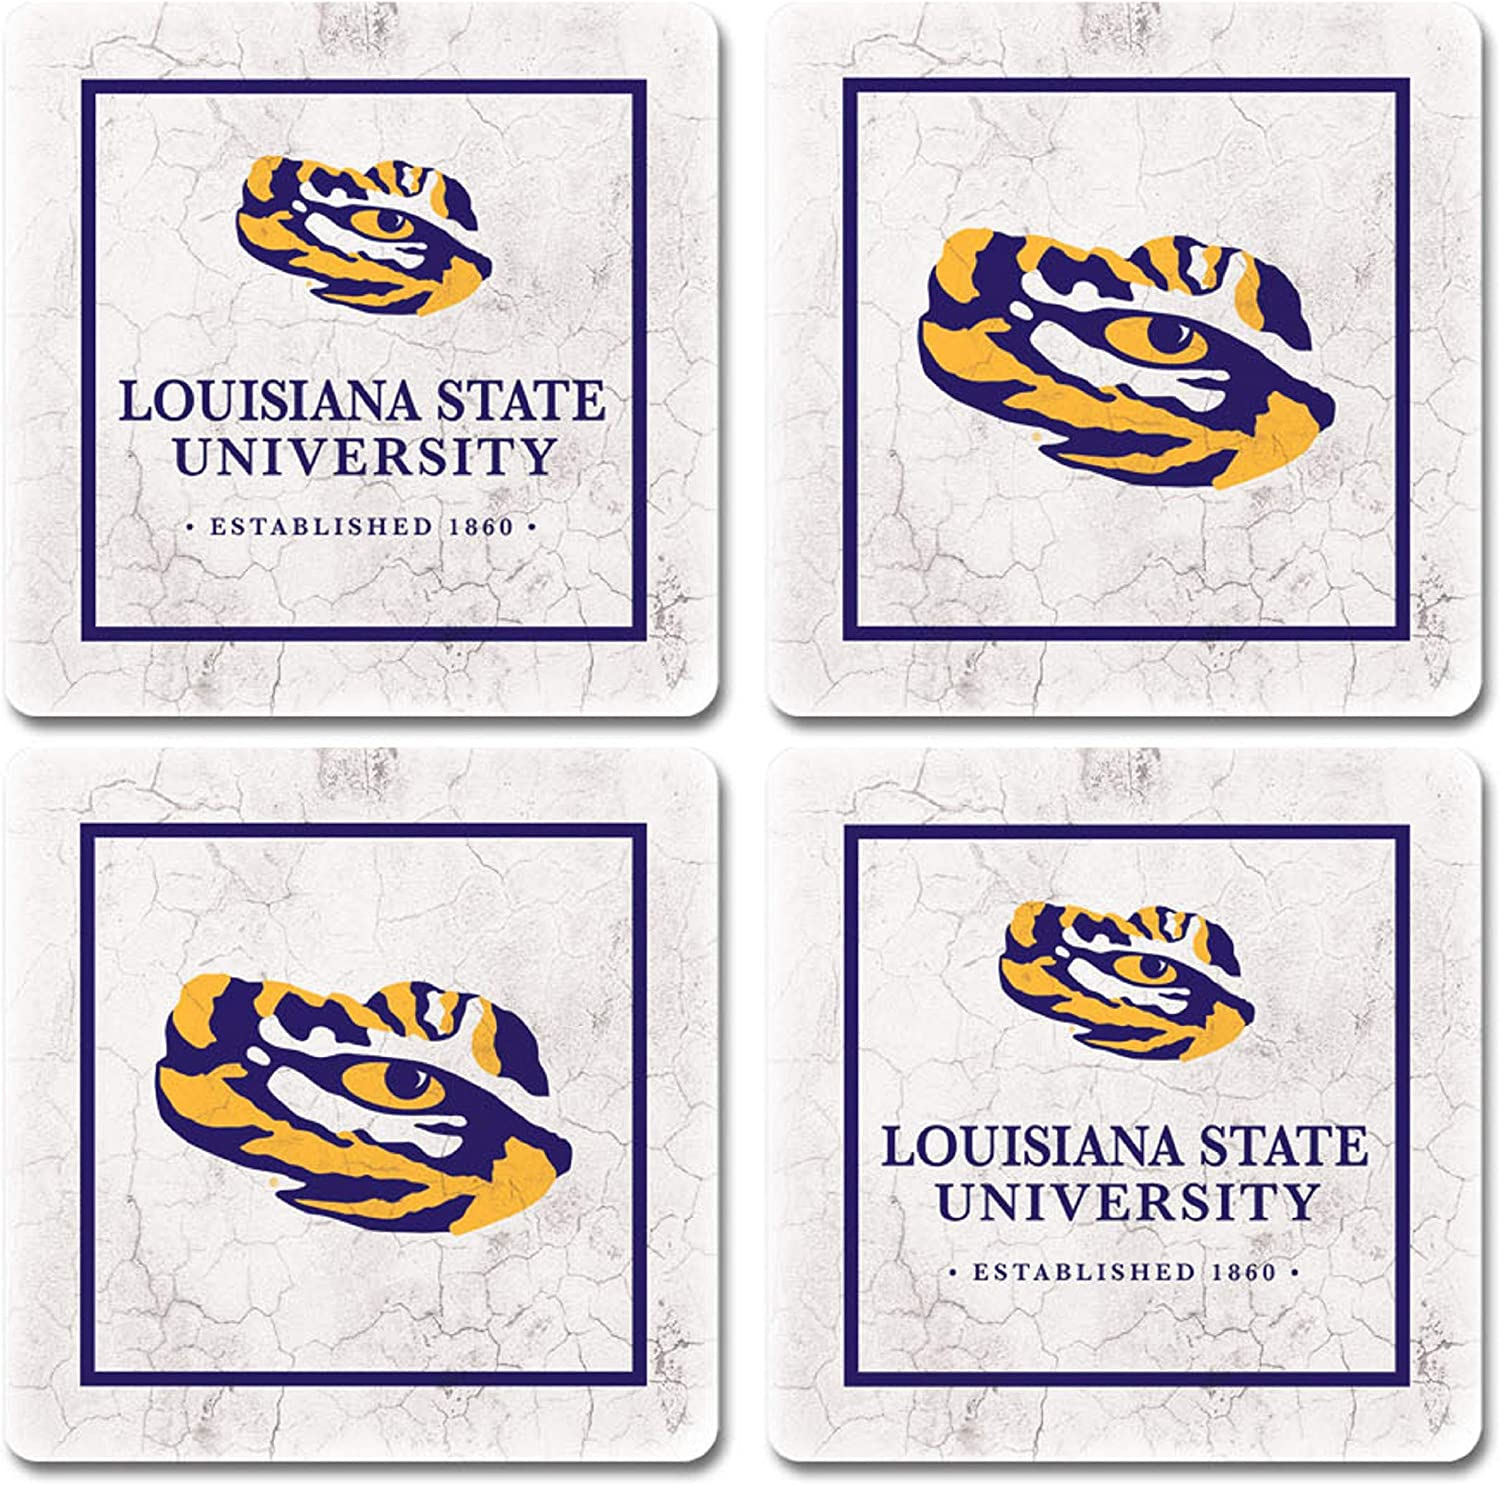 Sandstone NCAA Legacy Lsu Tigers Thirsty Car Coaster 2-Pack One Size